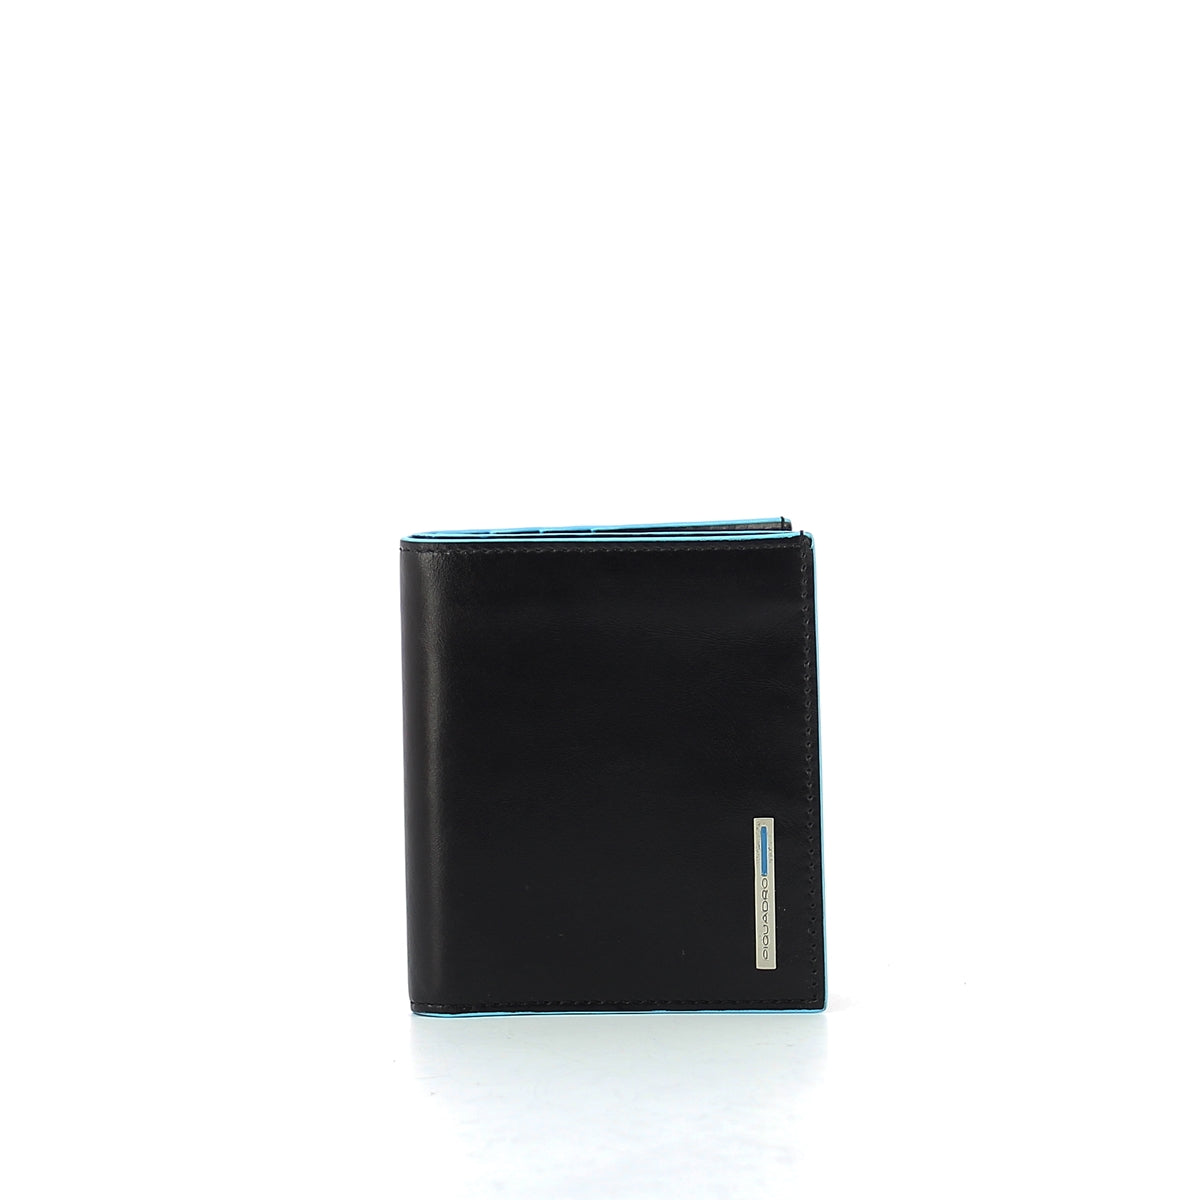 Piquadro - Credit card holder Blue Square - PP1518B2 - NERO